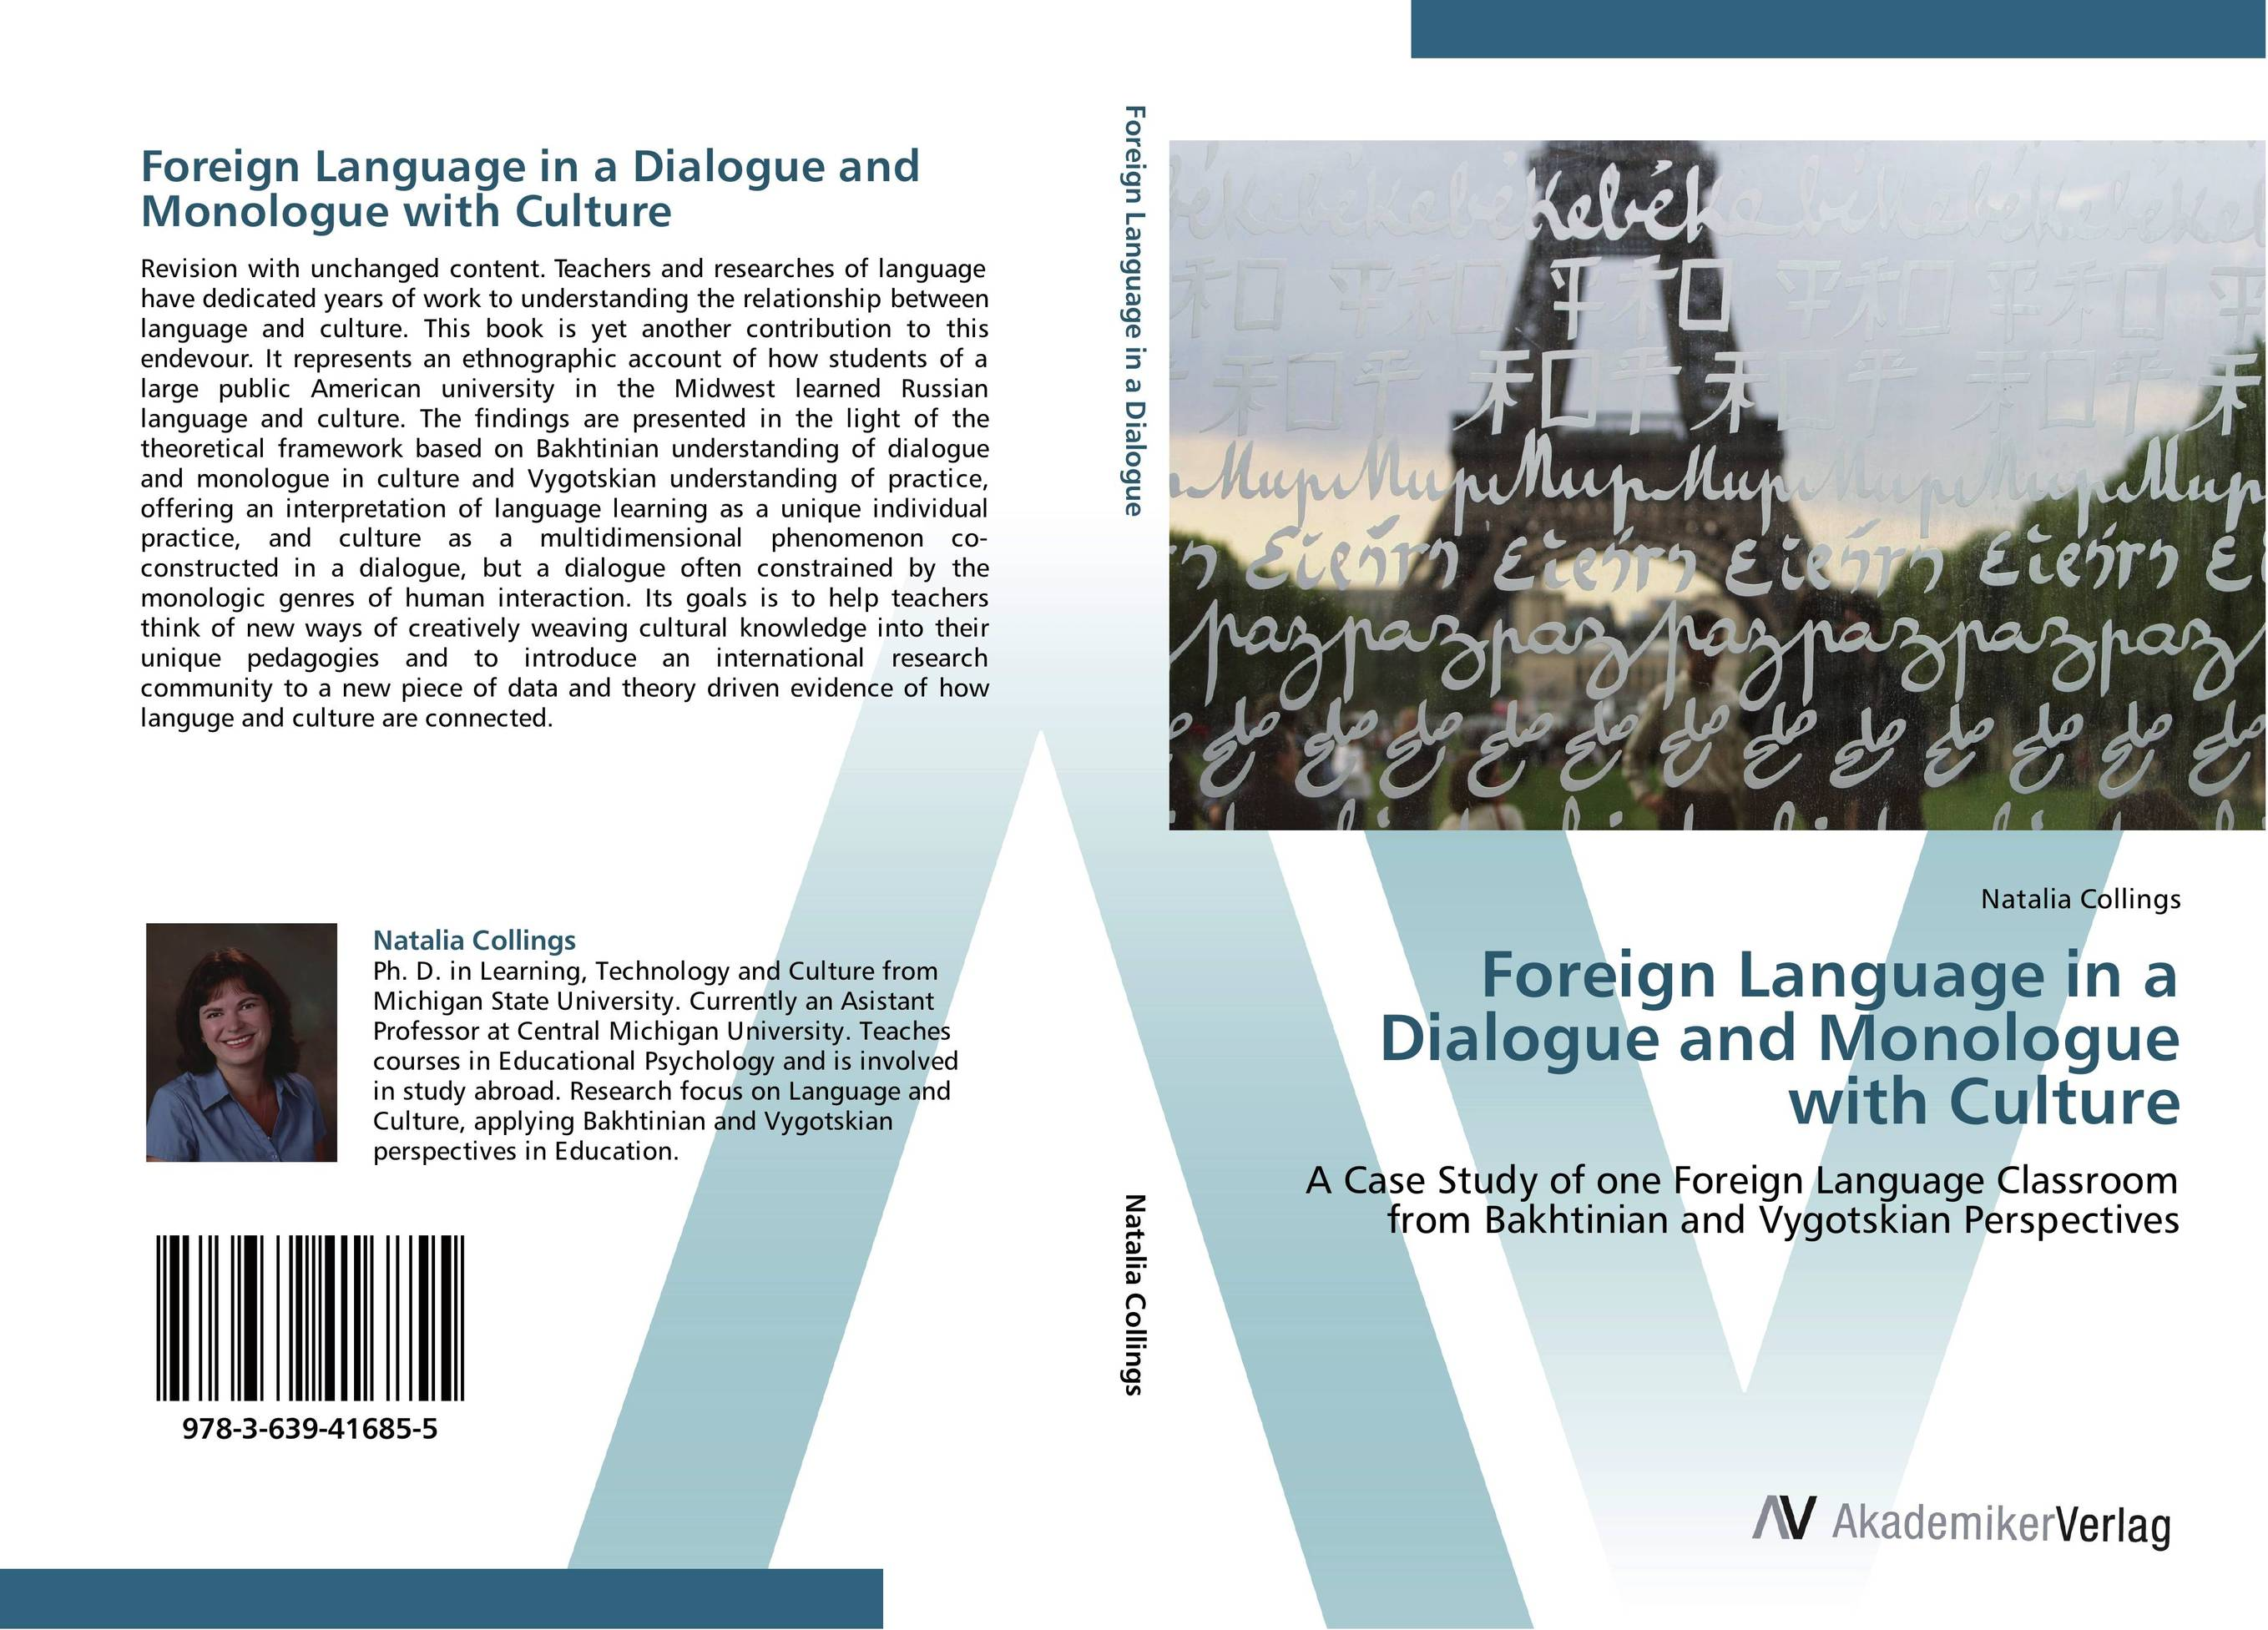 Foreign Language in a Dialogue and Monologue with Culture e hutchins culture and inference – a trobriand case study